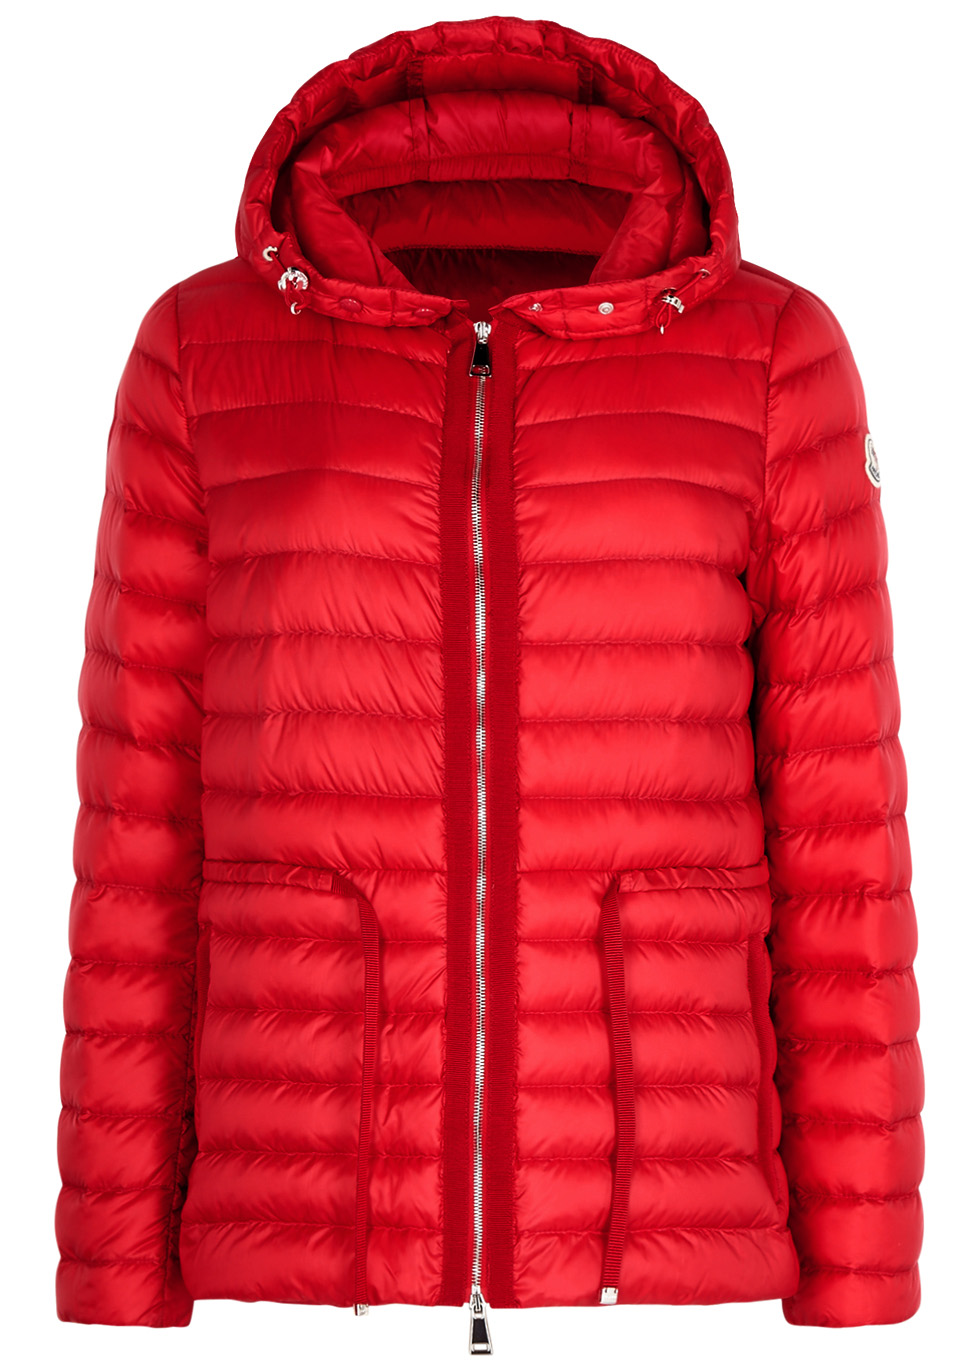 Raief red shell jacket - Moncler